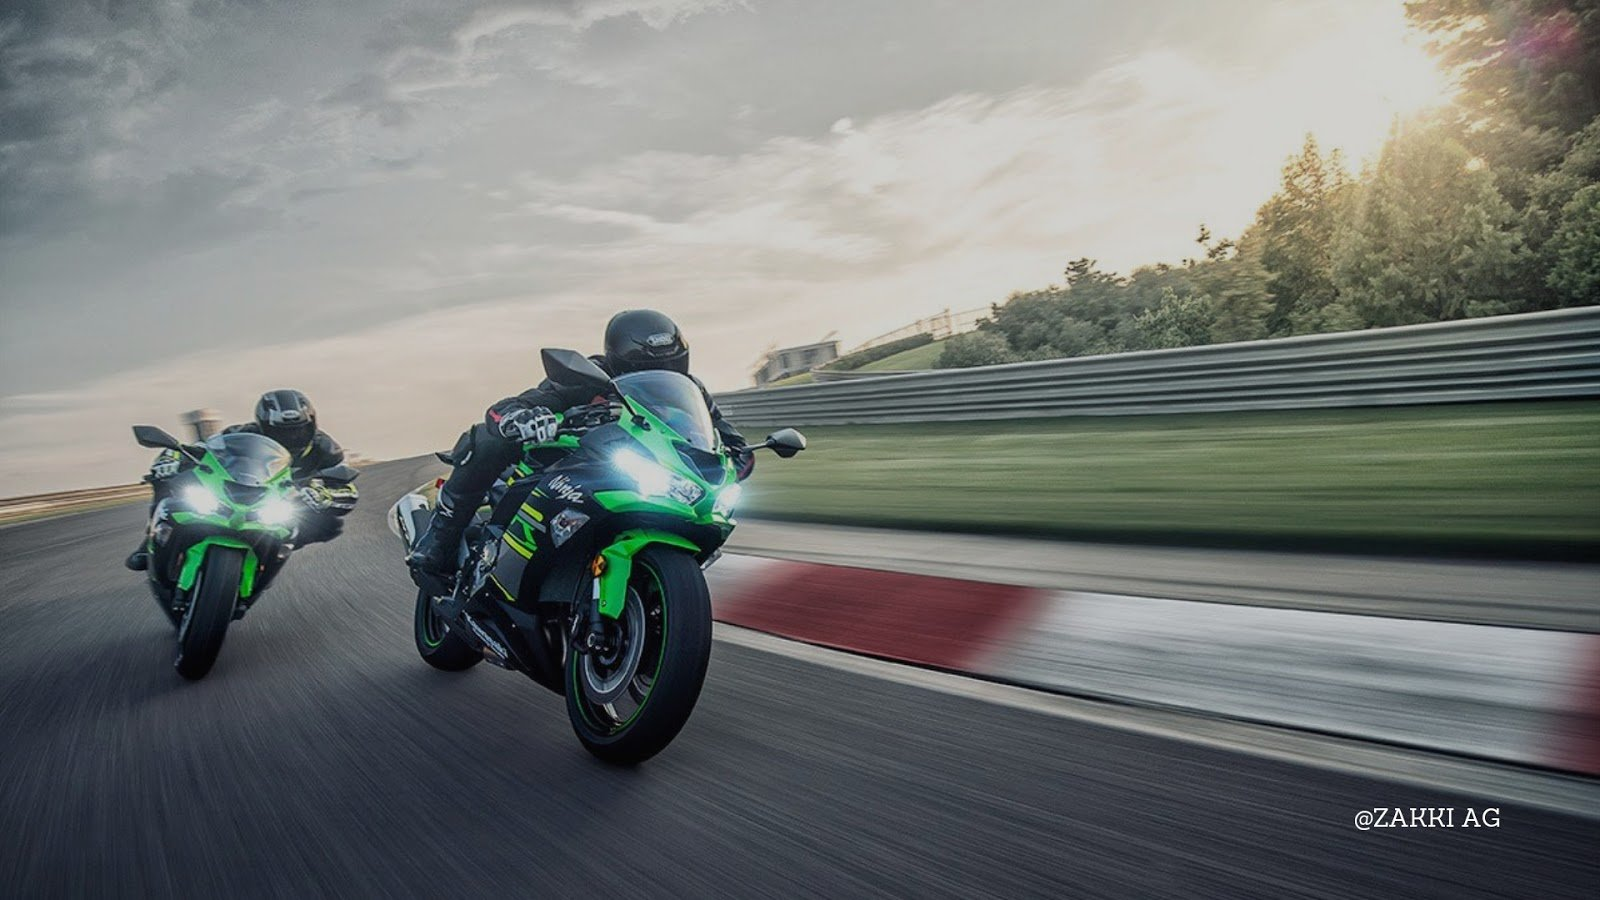 ZAKKI AG WALLPAPER KAWASAKI NINJA ZX 6R ABS KRT EDITION   ALL NEW 1600x900